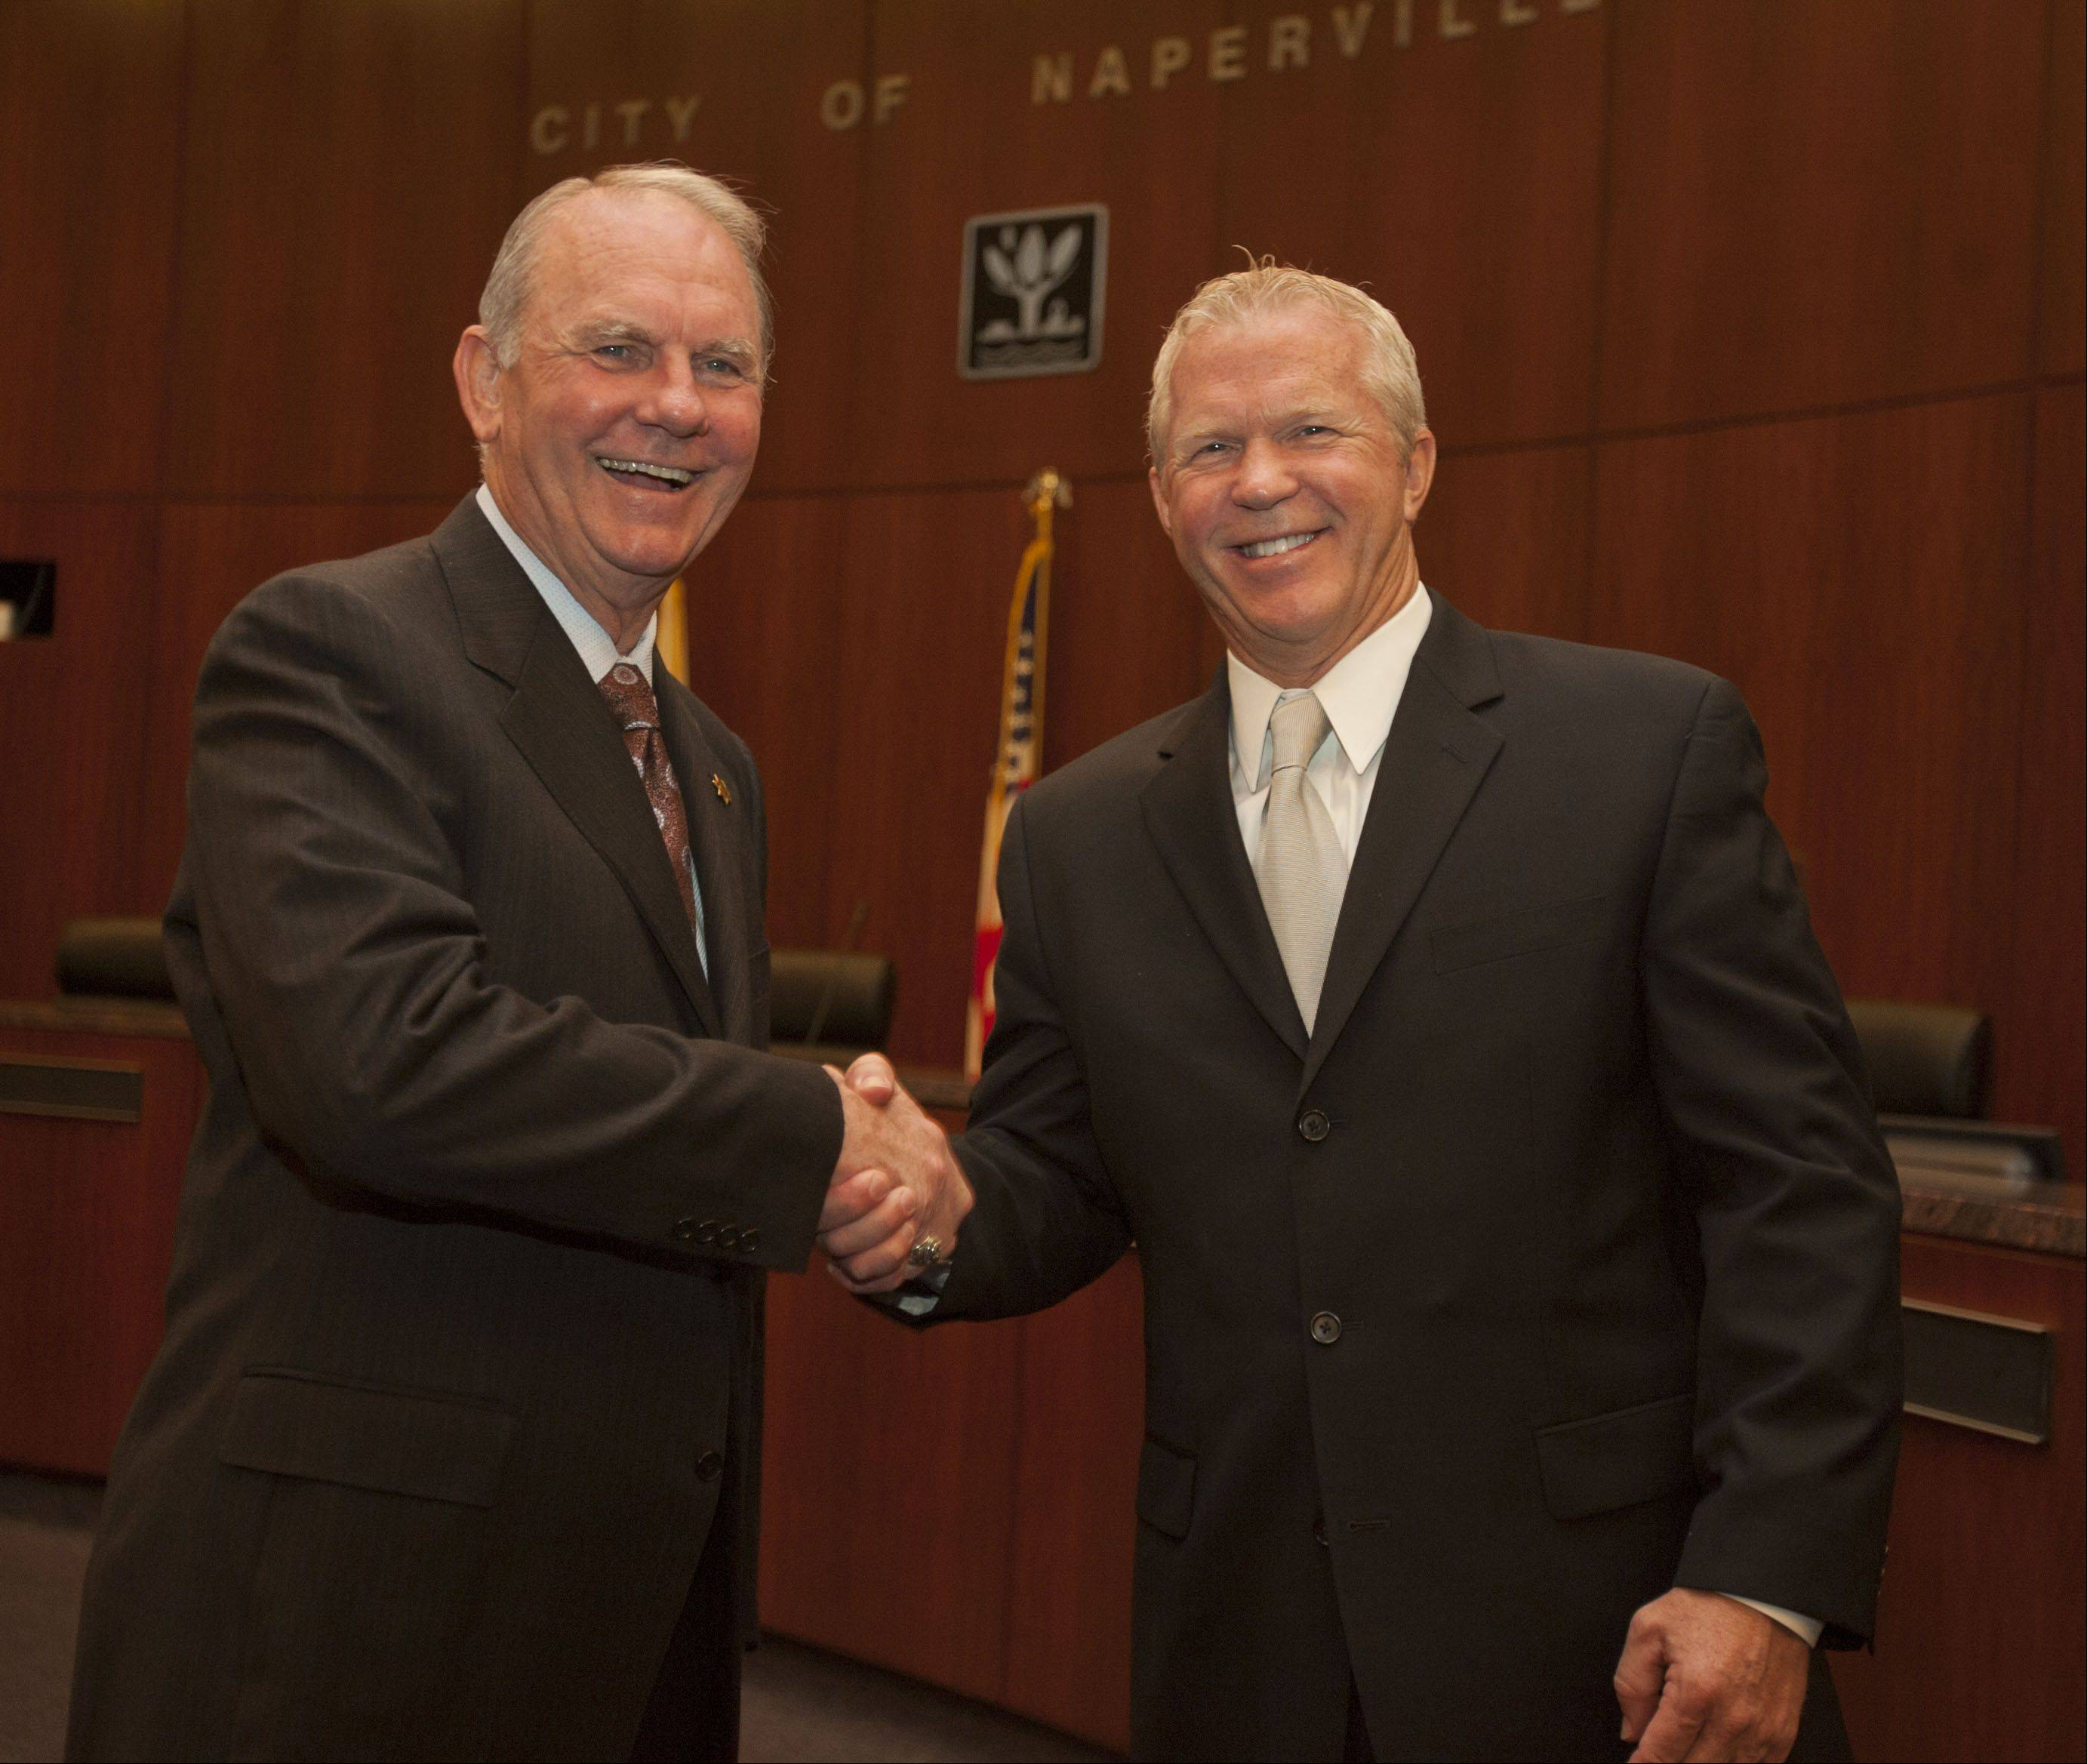 Longtime dream comes true for Naperville's new top cop